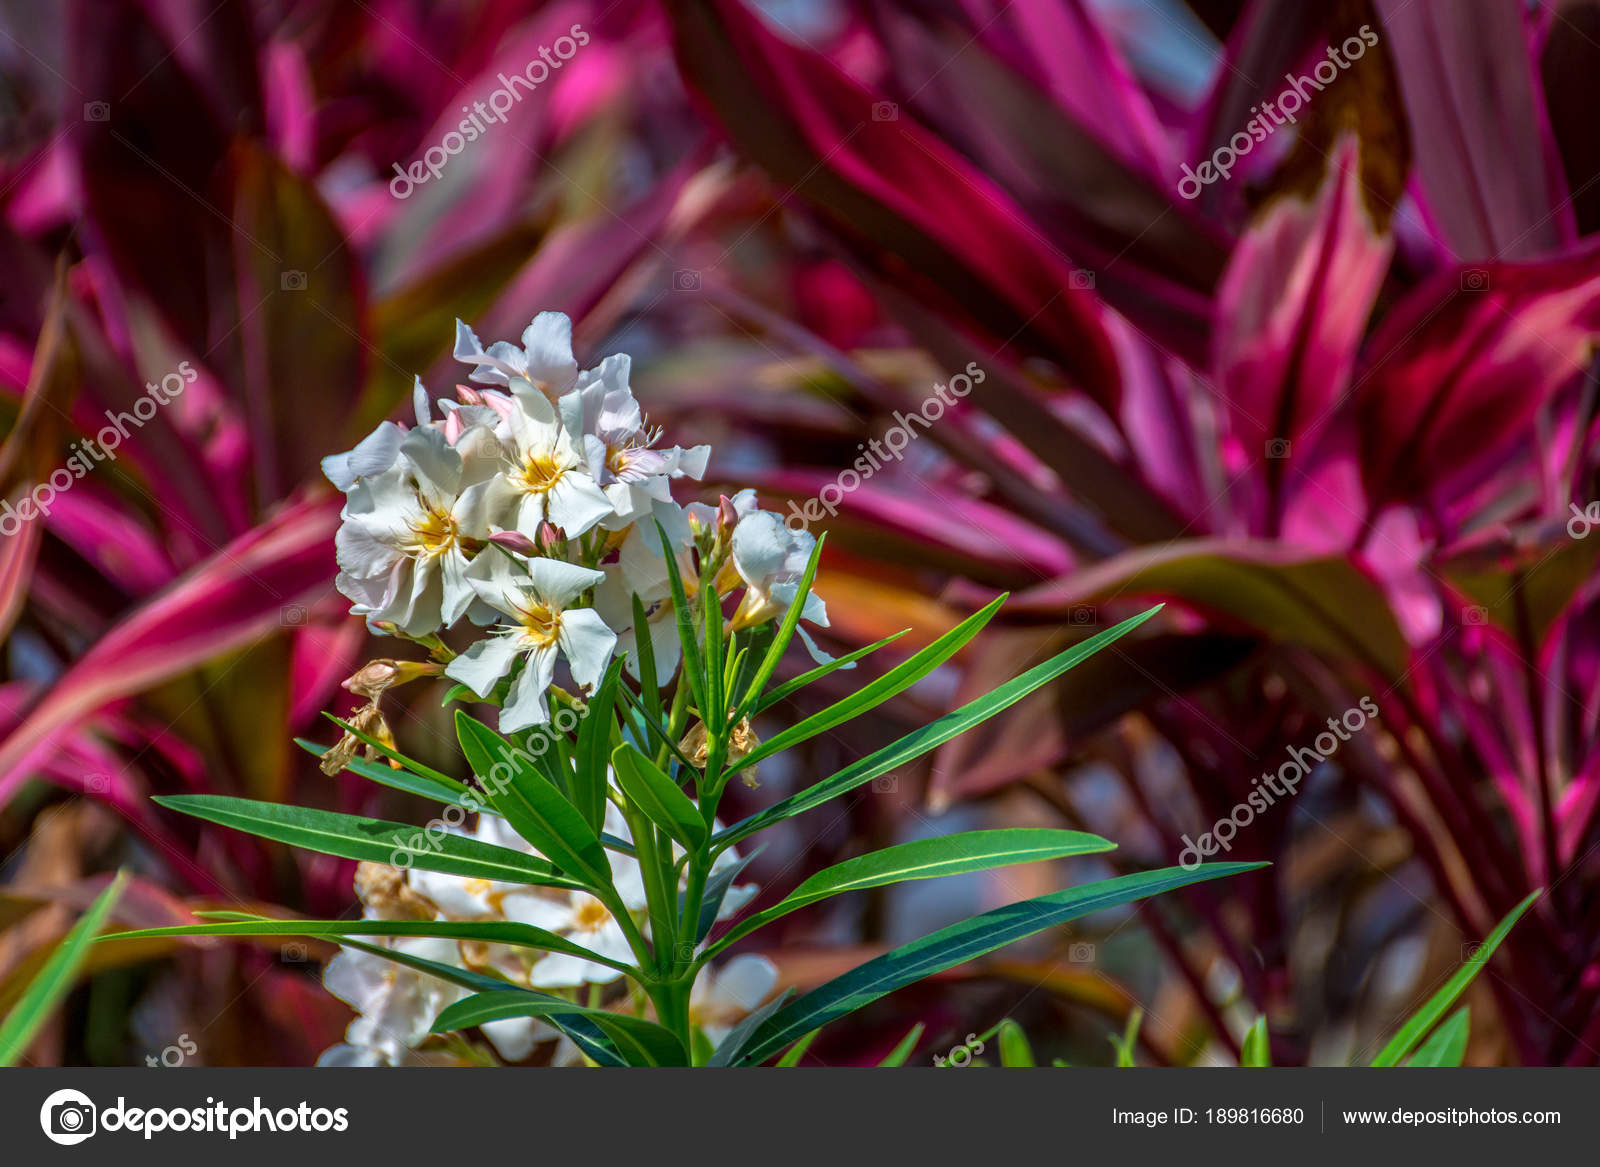 White Oleander Flowers Set Background Red Cordyline Foliage Shallow